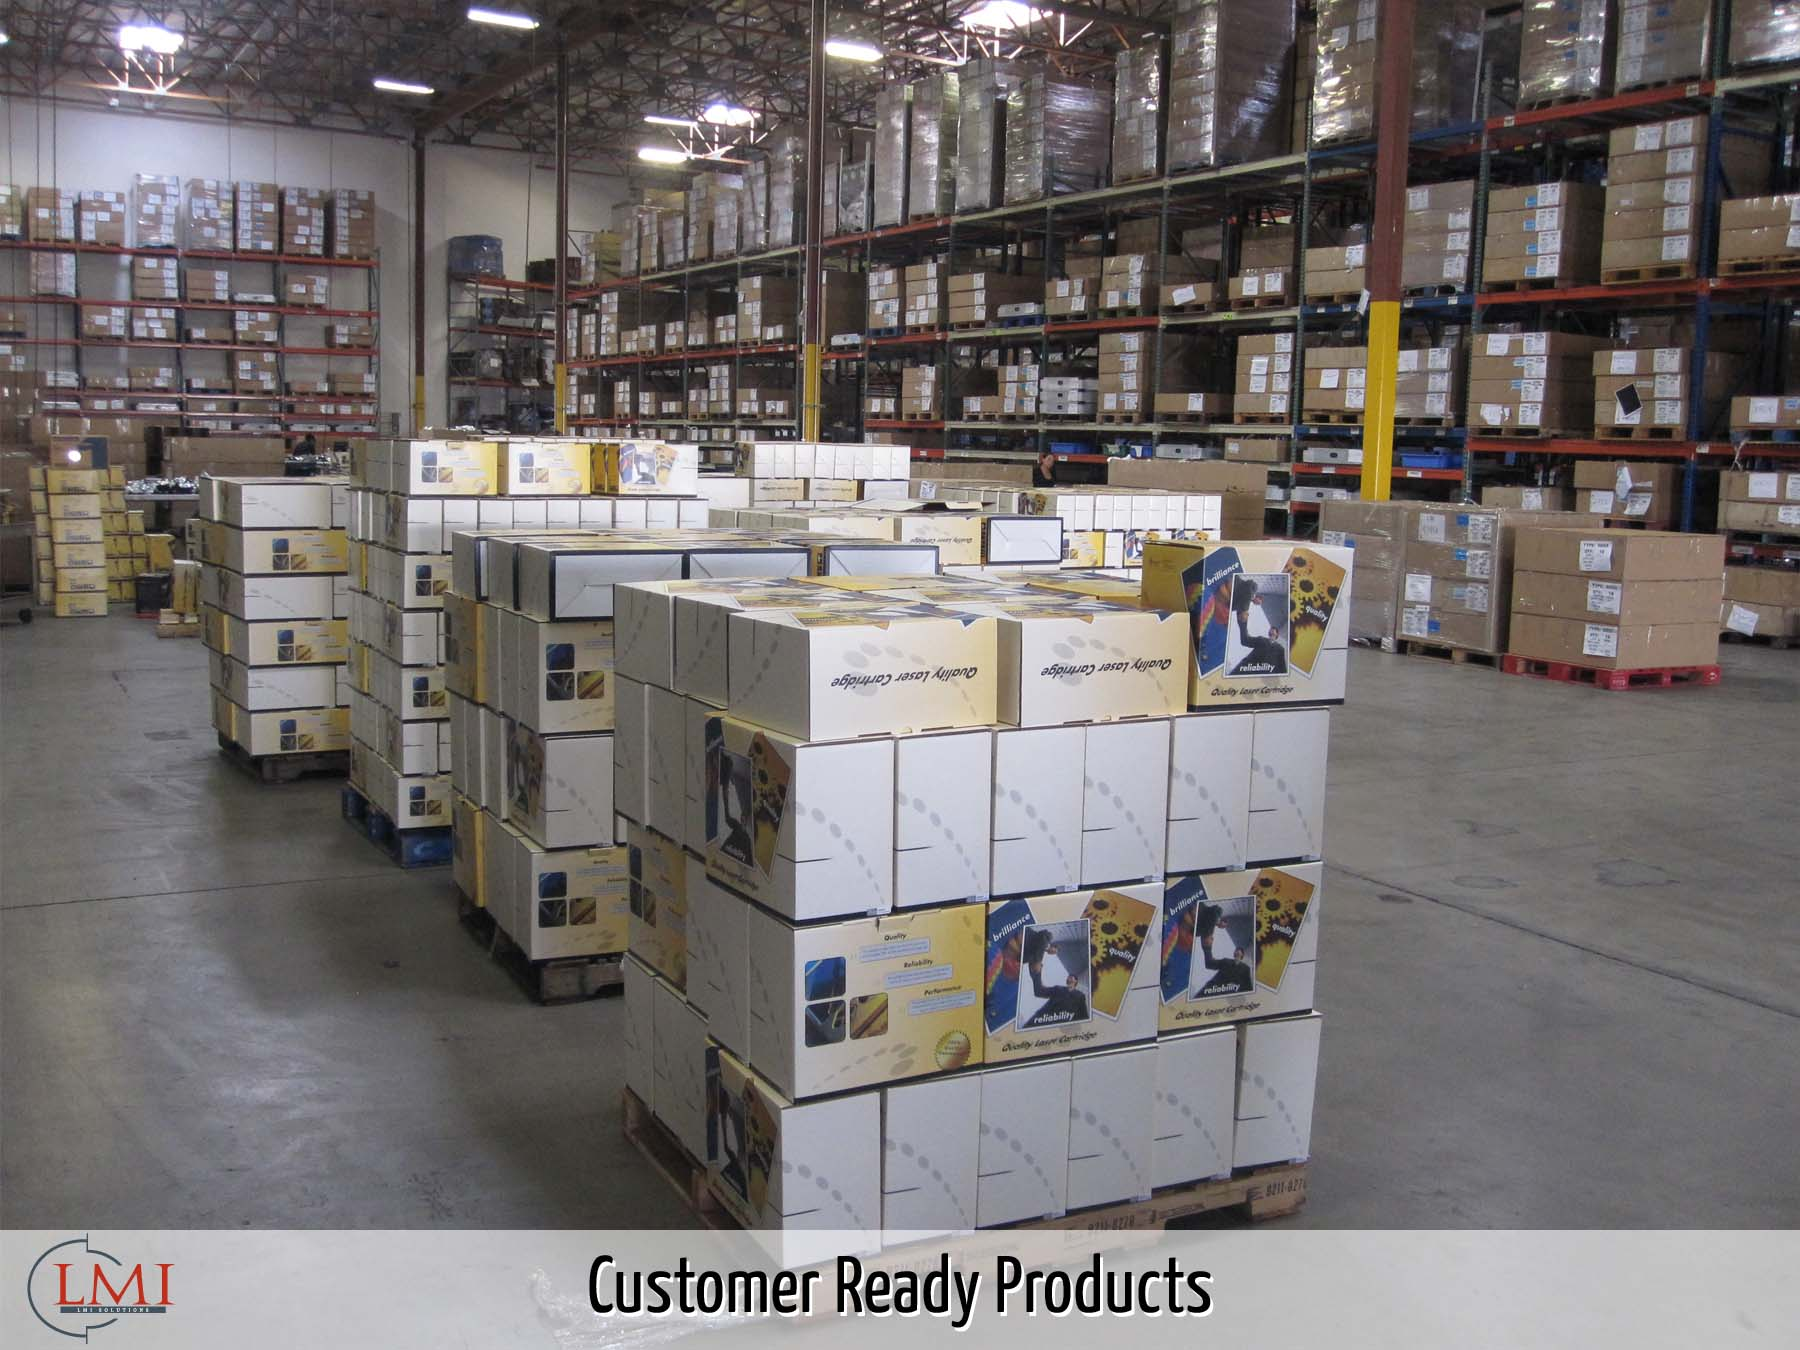 Customer Ready Products